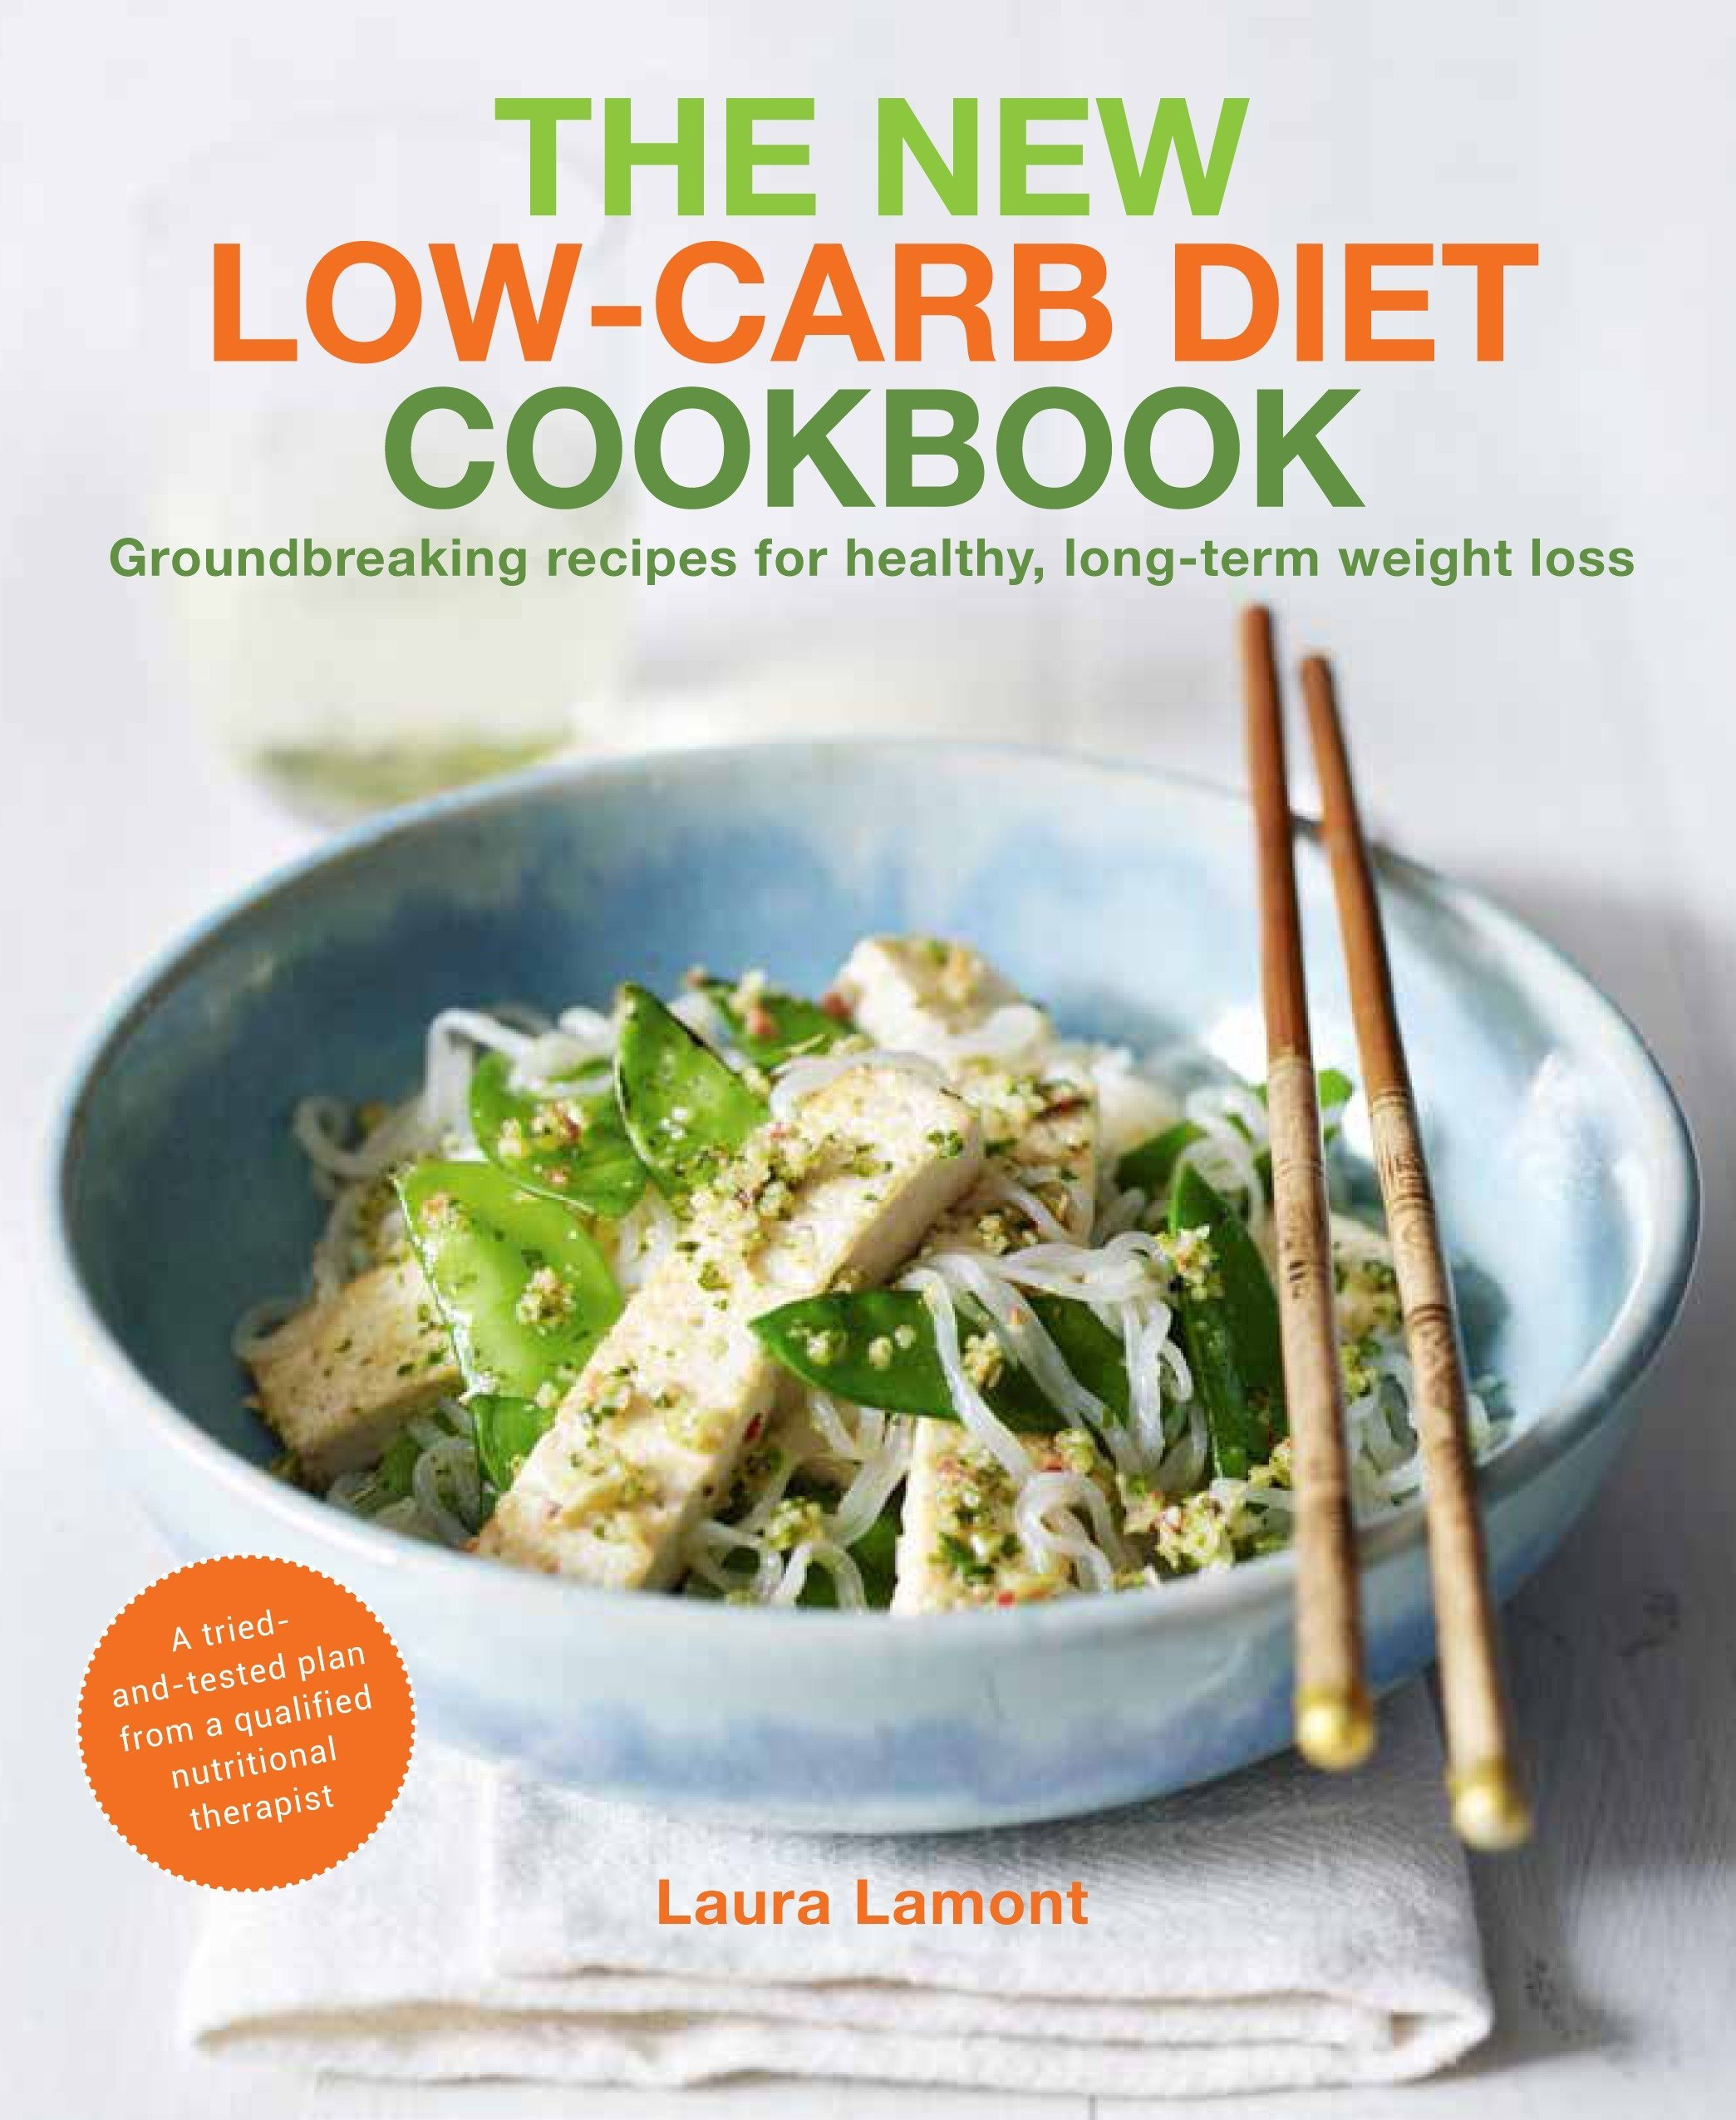 The New-Low Carb Diet Cookbook: Groundbreaking recipes for healthy,  long-term weight loss: Laura Lamont: 9781848992139: Amazon.com: Books